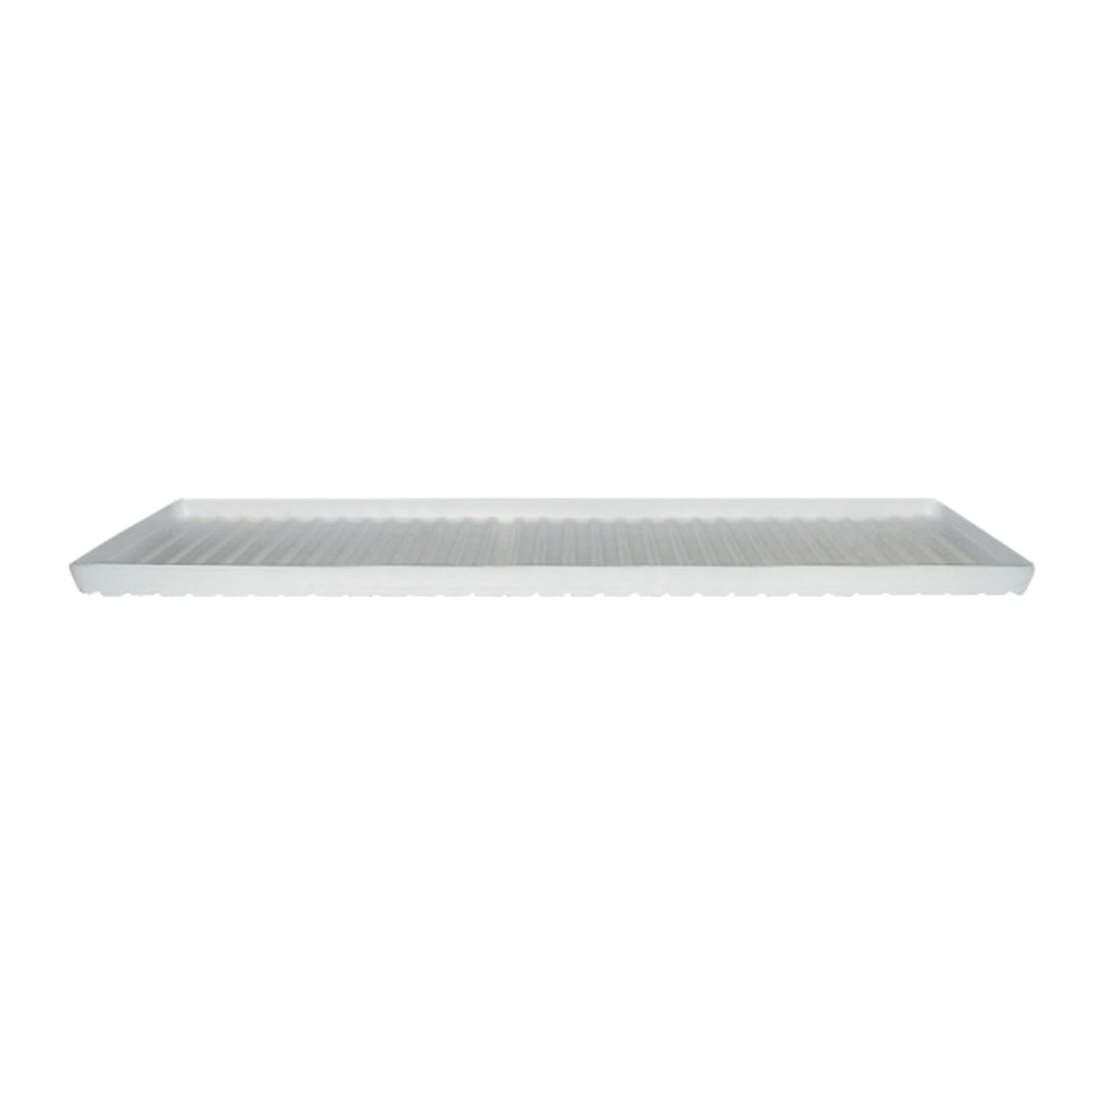 LYON® 5550 Extra Shelf Bottom Tray, For Use With Acids and Corrosive Cabinet and Flammable Liquid Cabinet